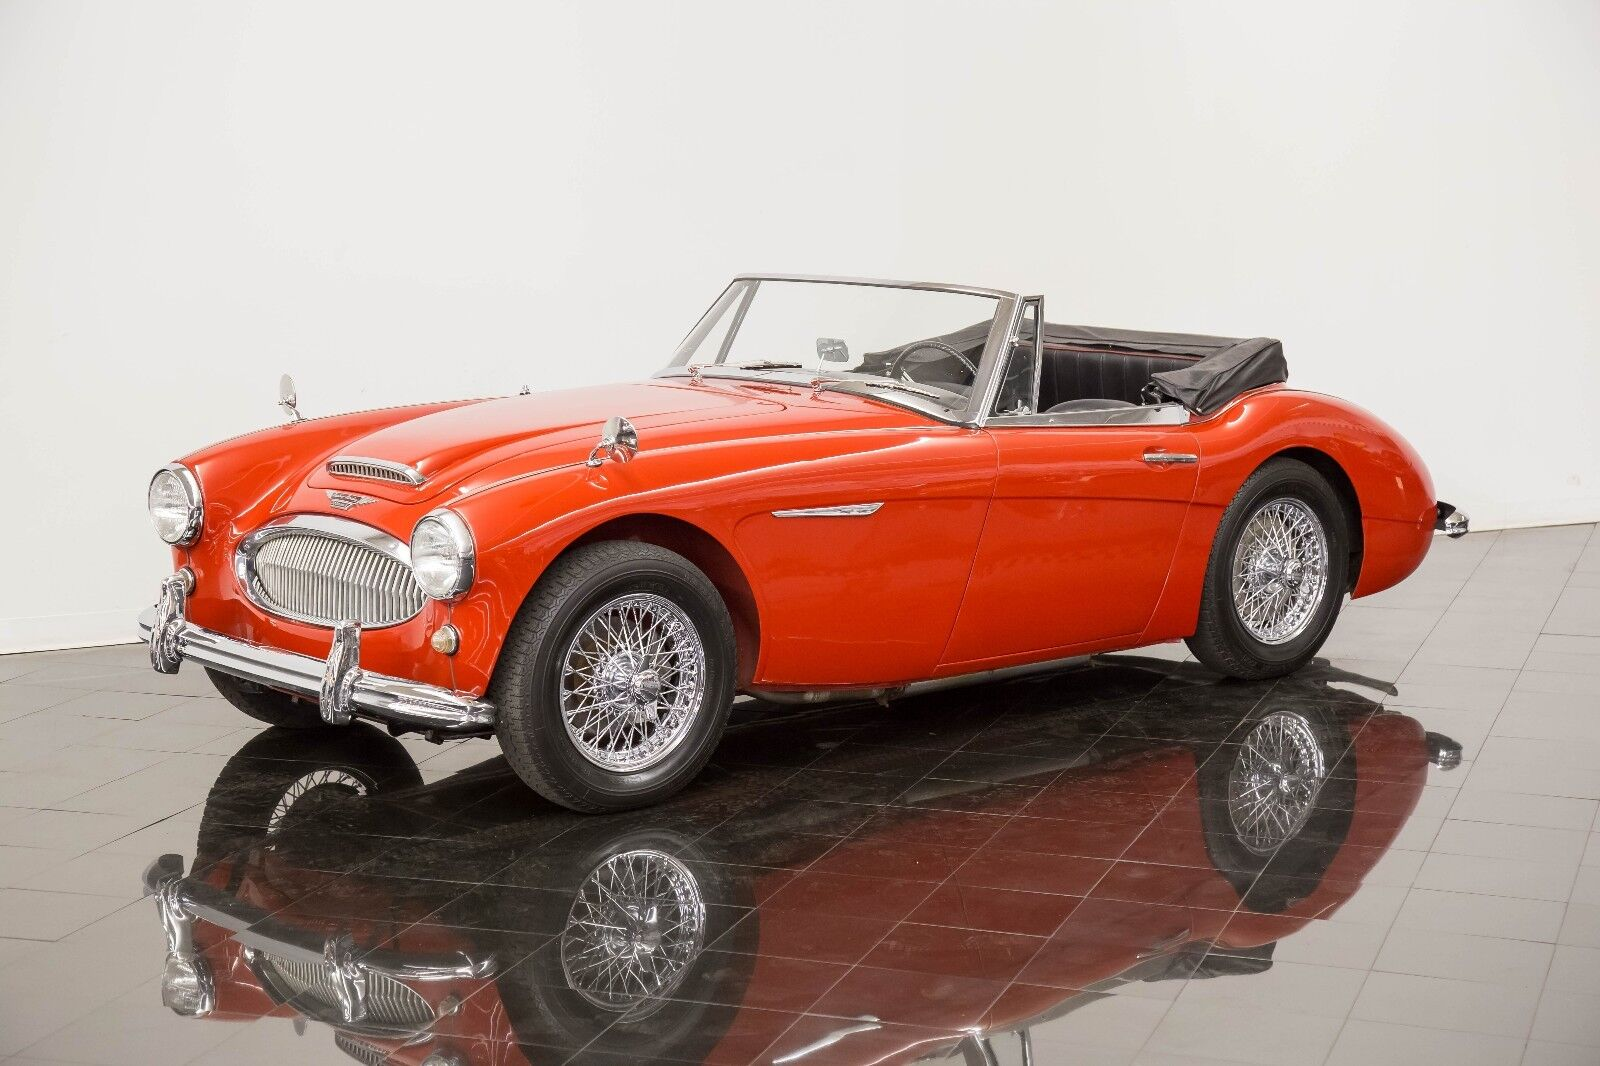 1963 Austin Healey 3000 Mark II BJ7 Convertible 1963 Austin Healey 3000 Mark II BJ7 Convertible